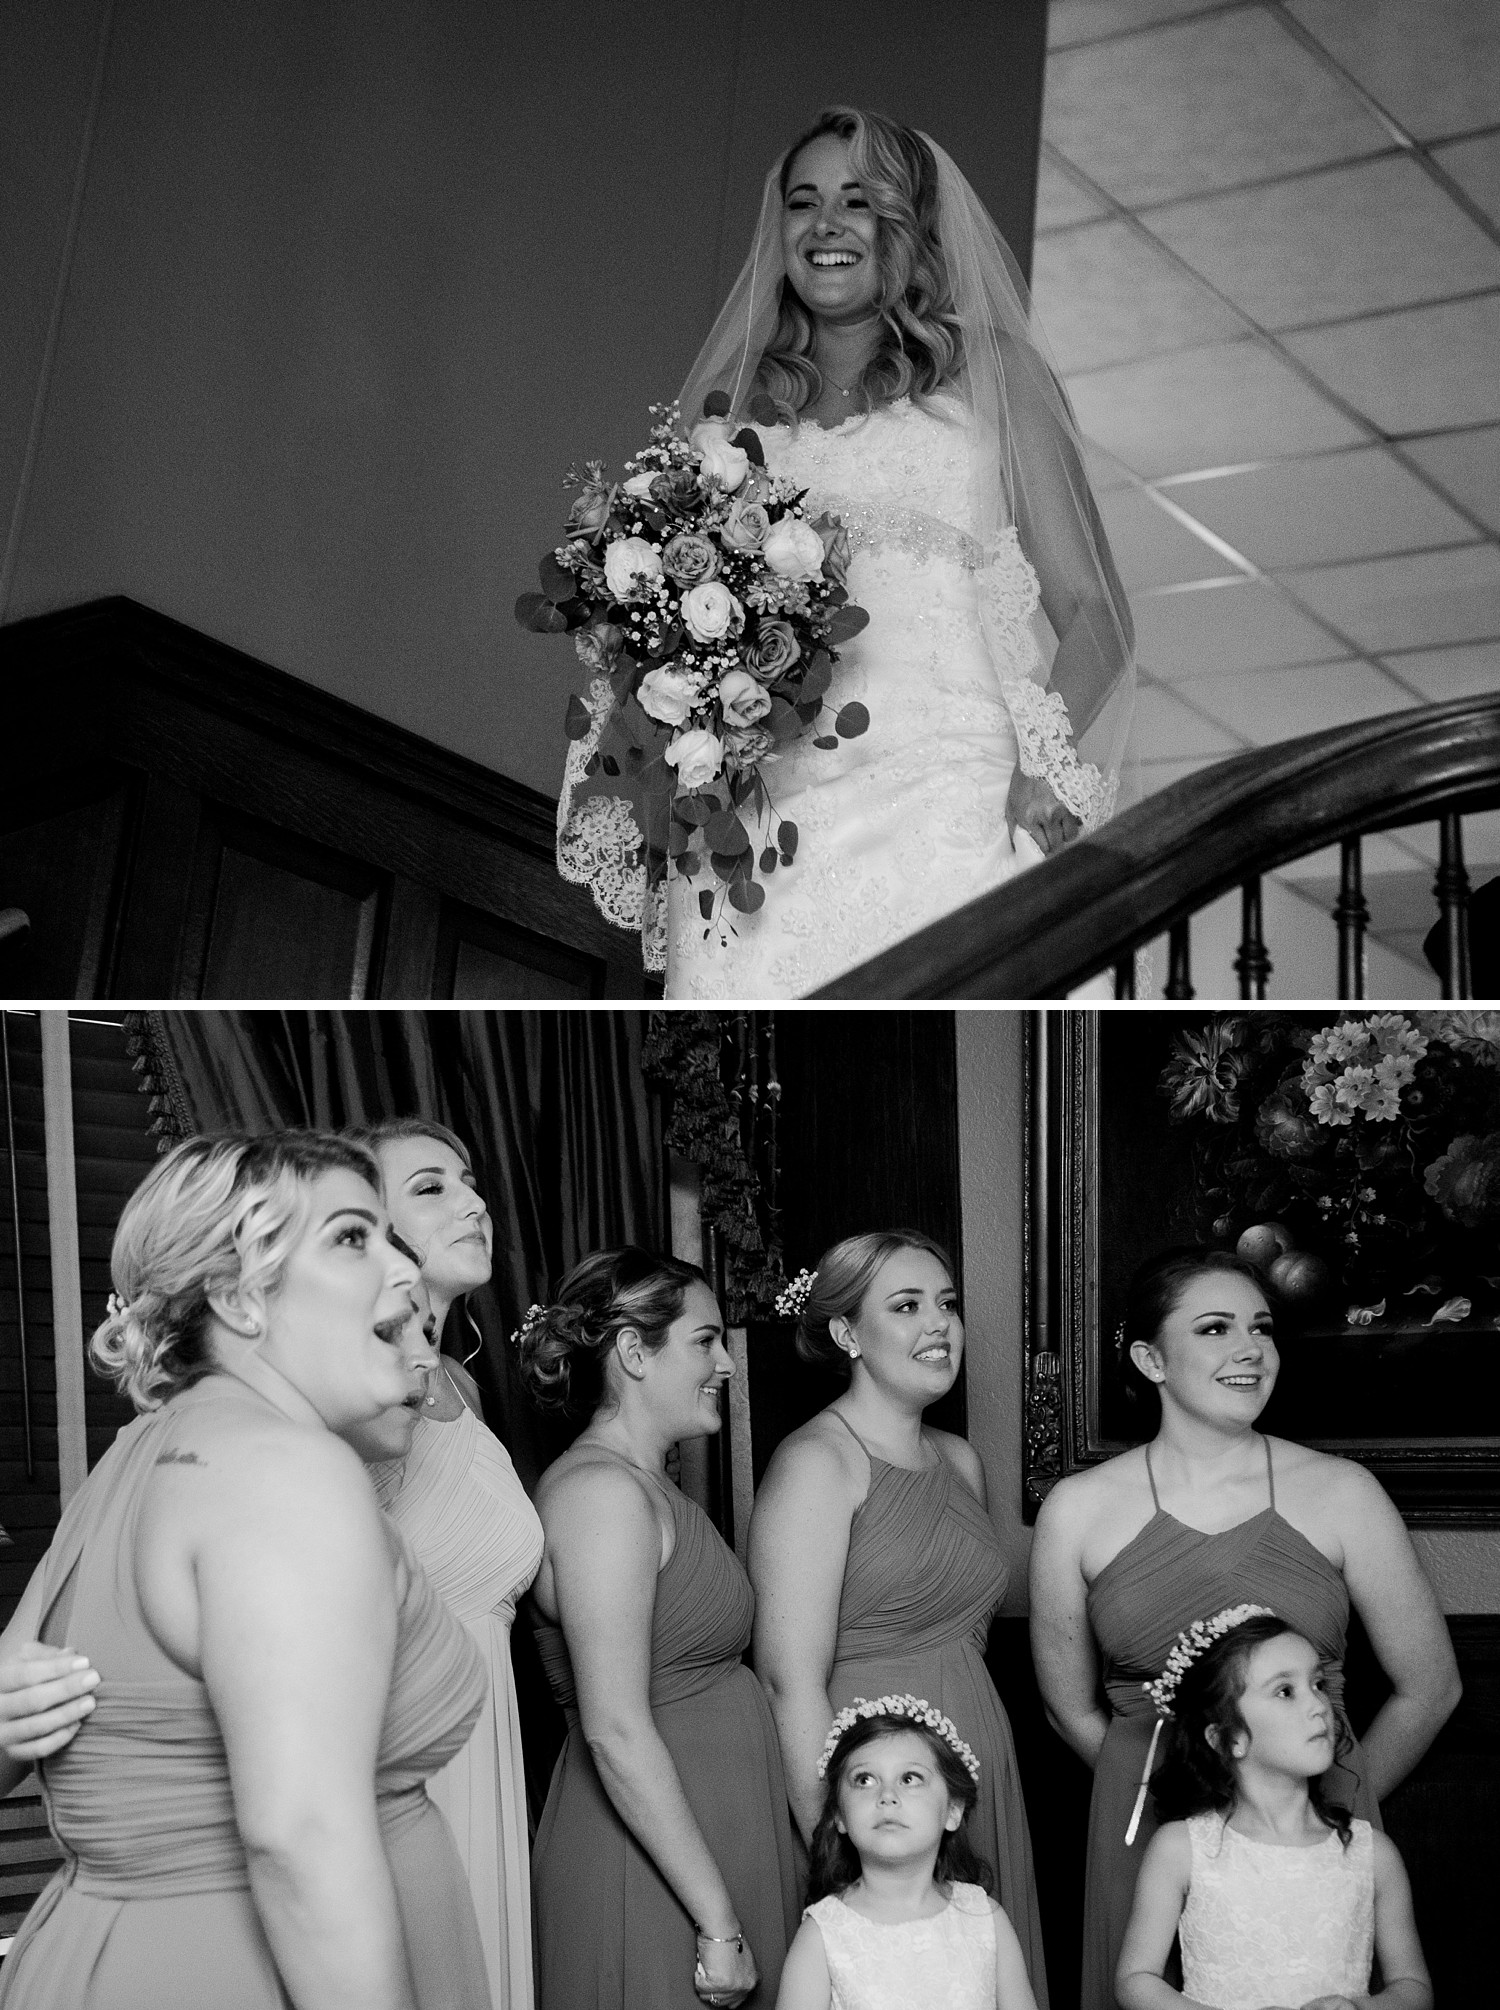 Jackson_Wedding_FirstLook_DSC_3385_0004.jpg